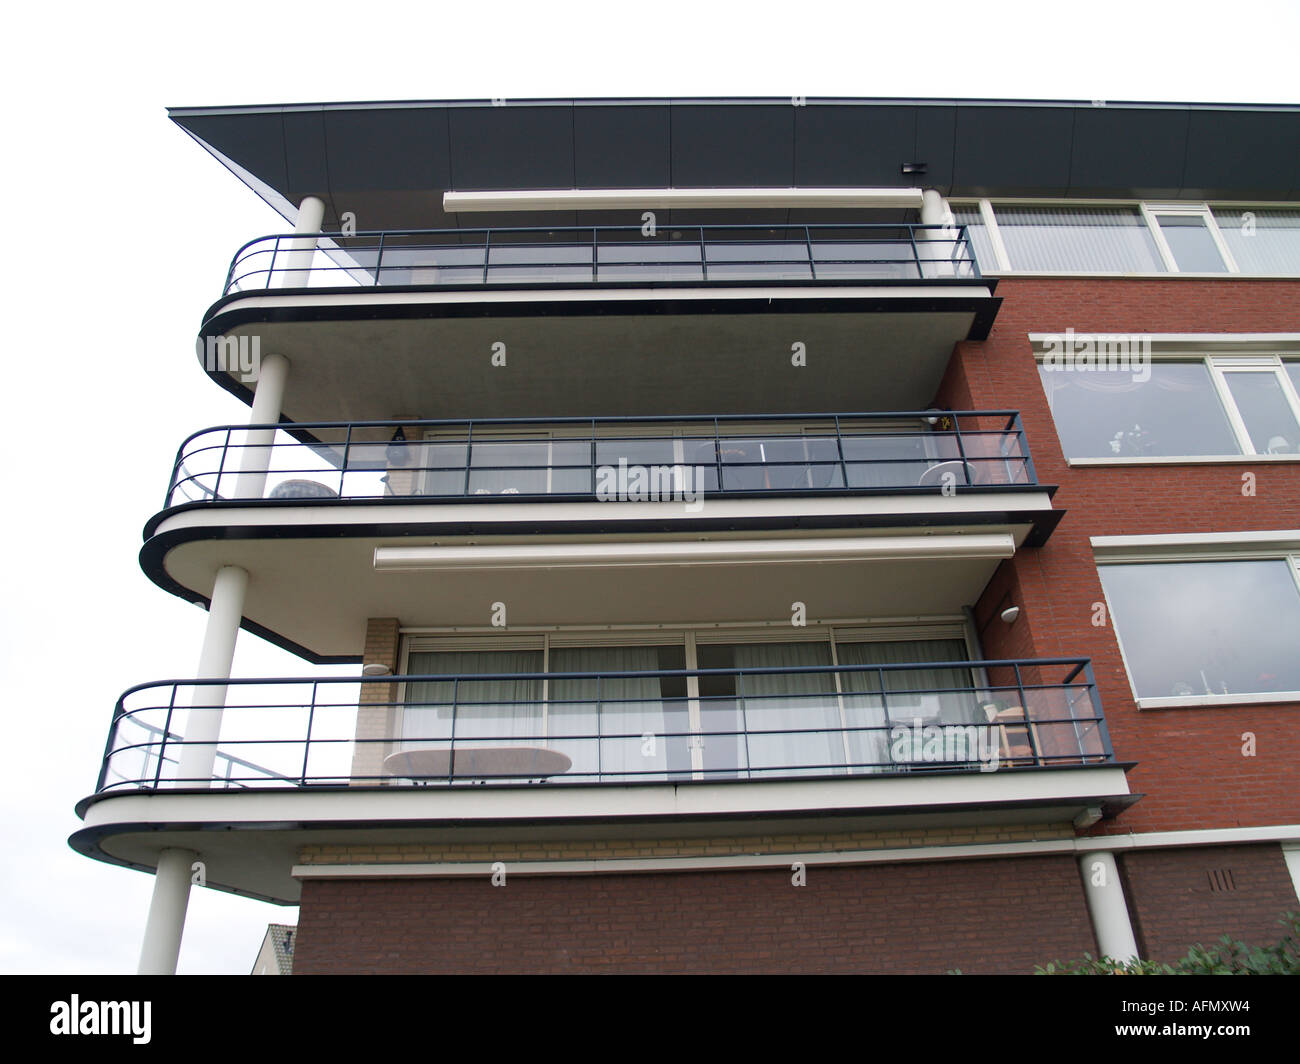 Balcony Of Apartment Building Flat With Modern Architecture Stock